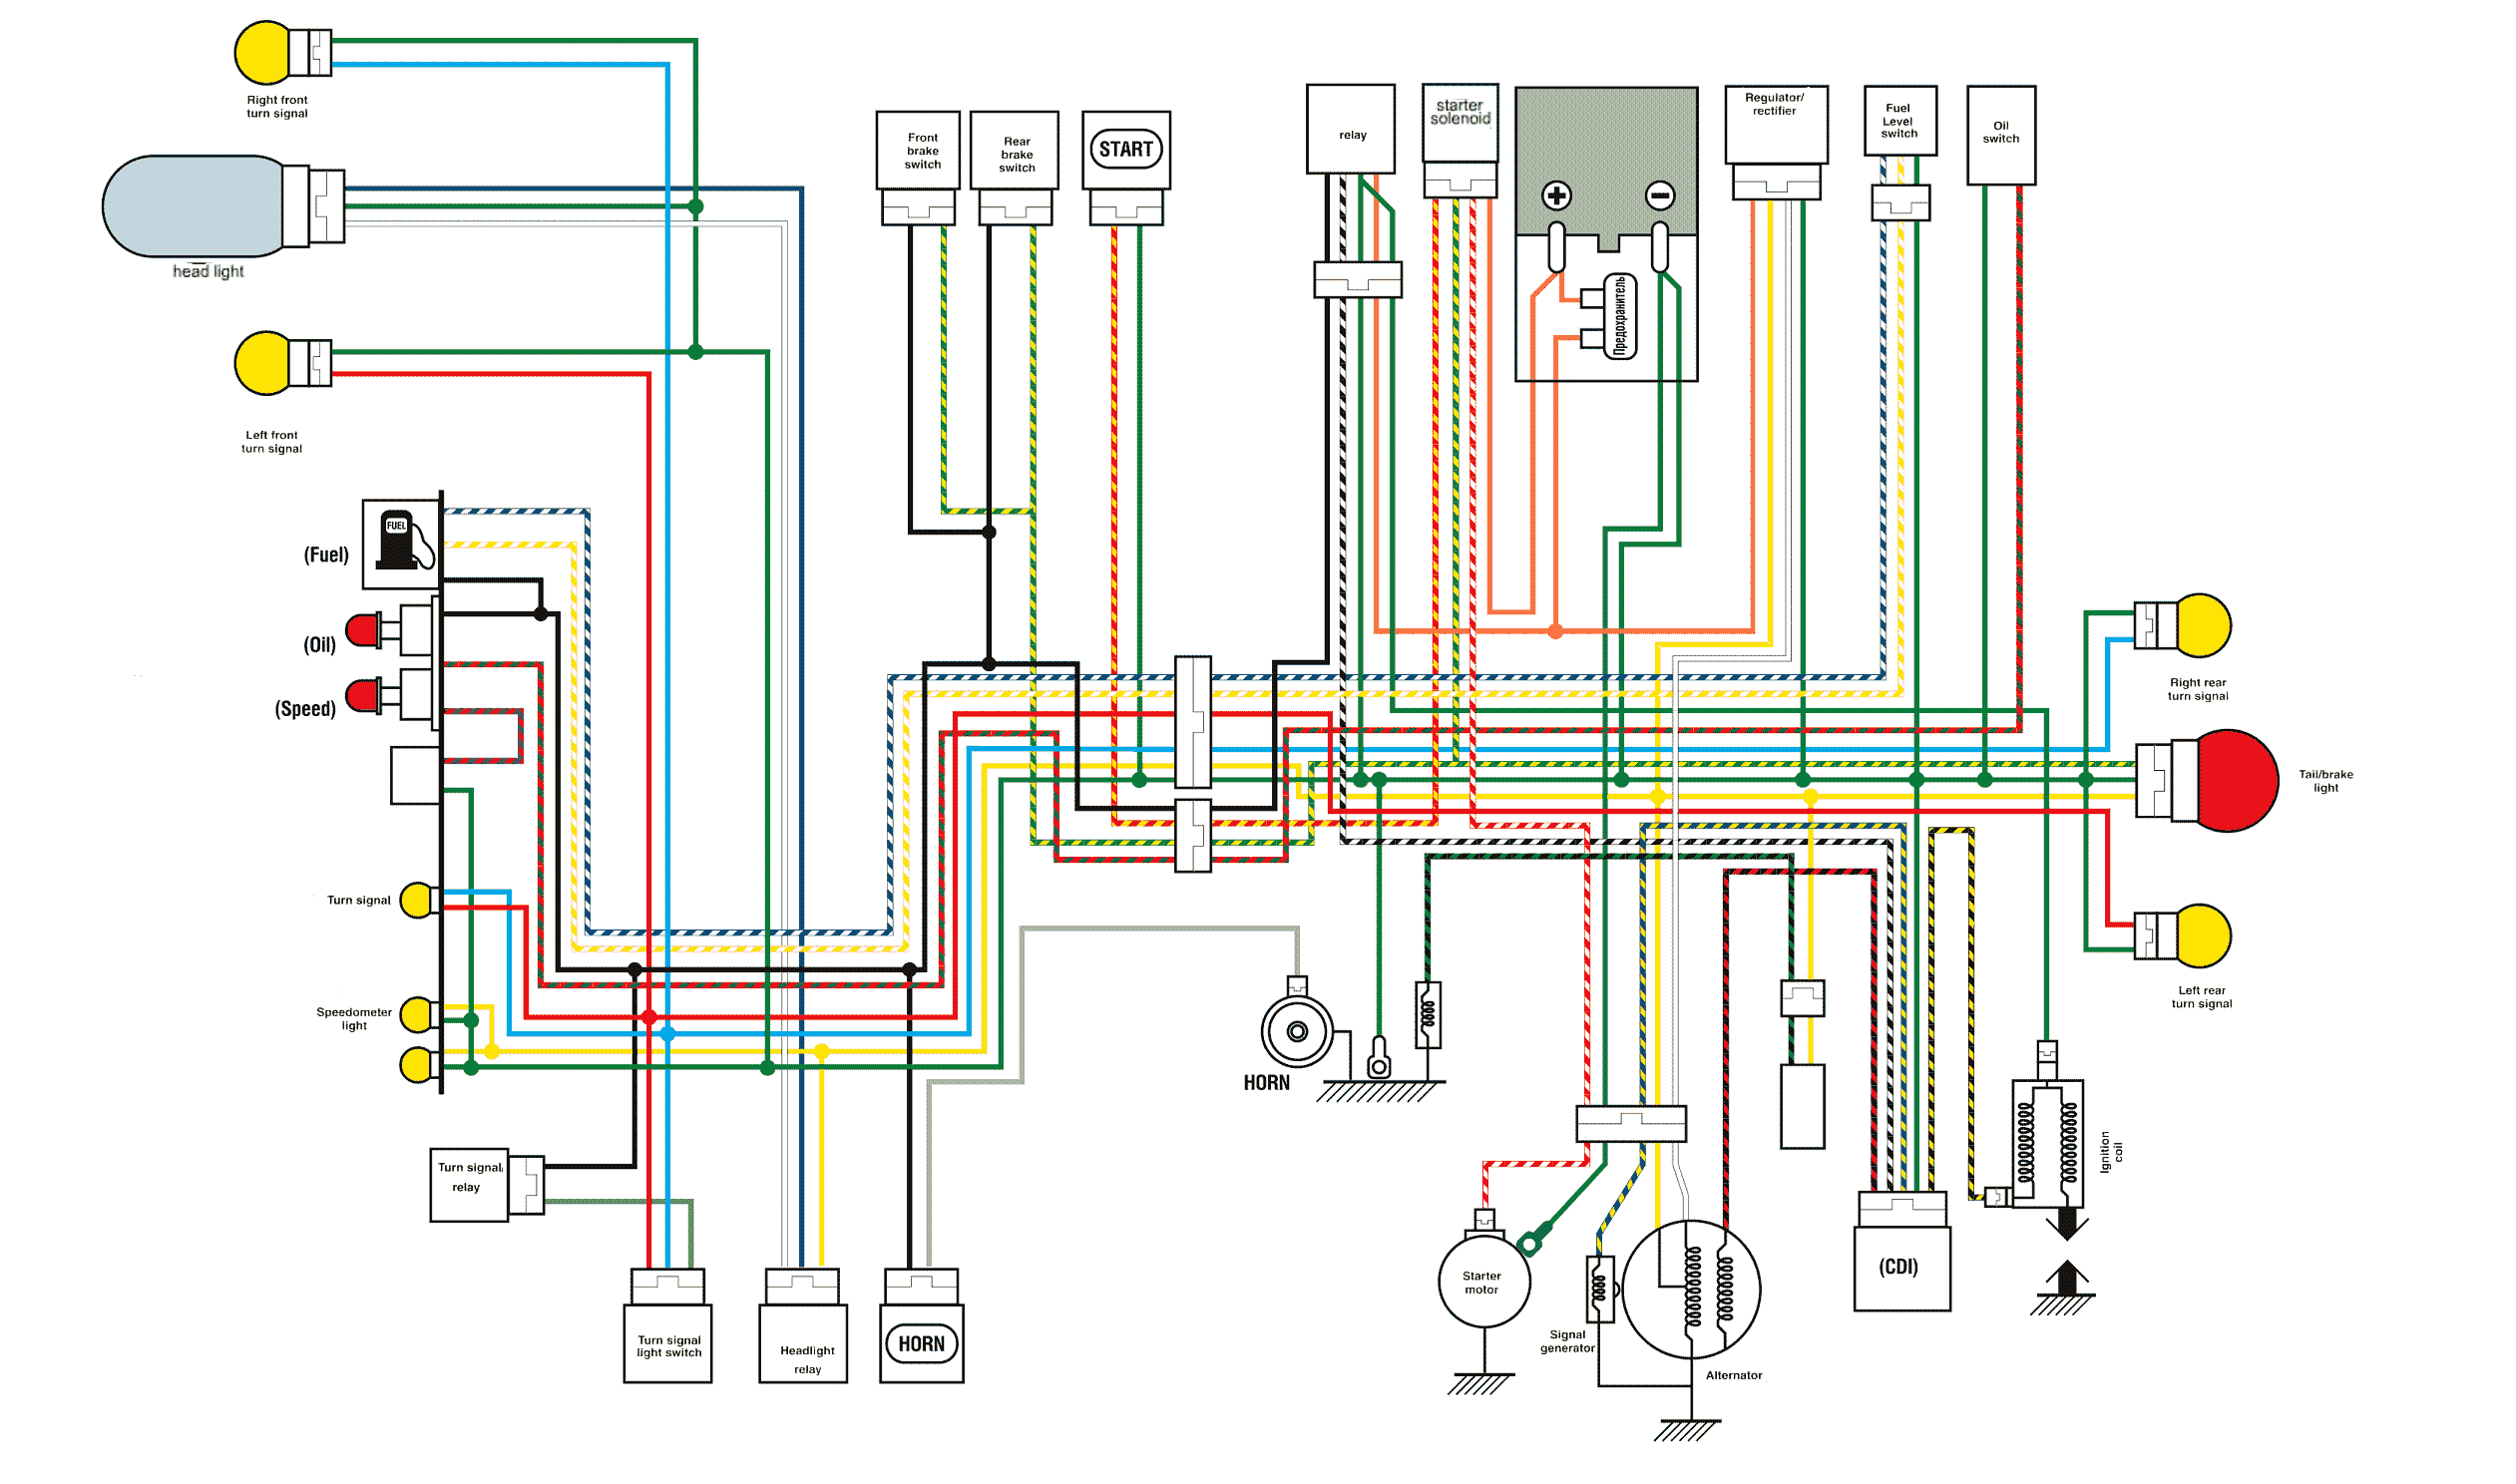 wiring diagram xrm 110 schema wiring diagram honda xrm 110 wiring diagram download